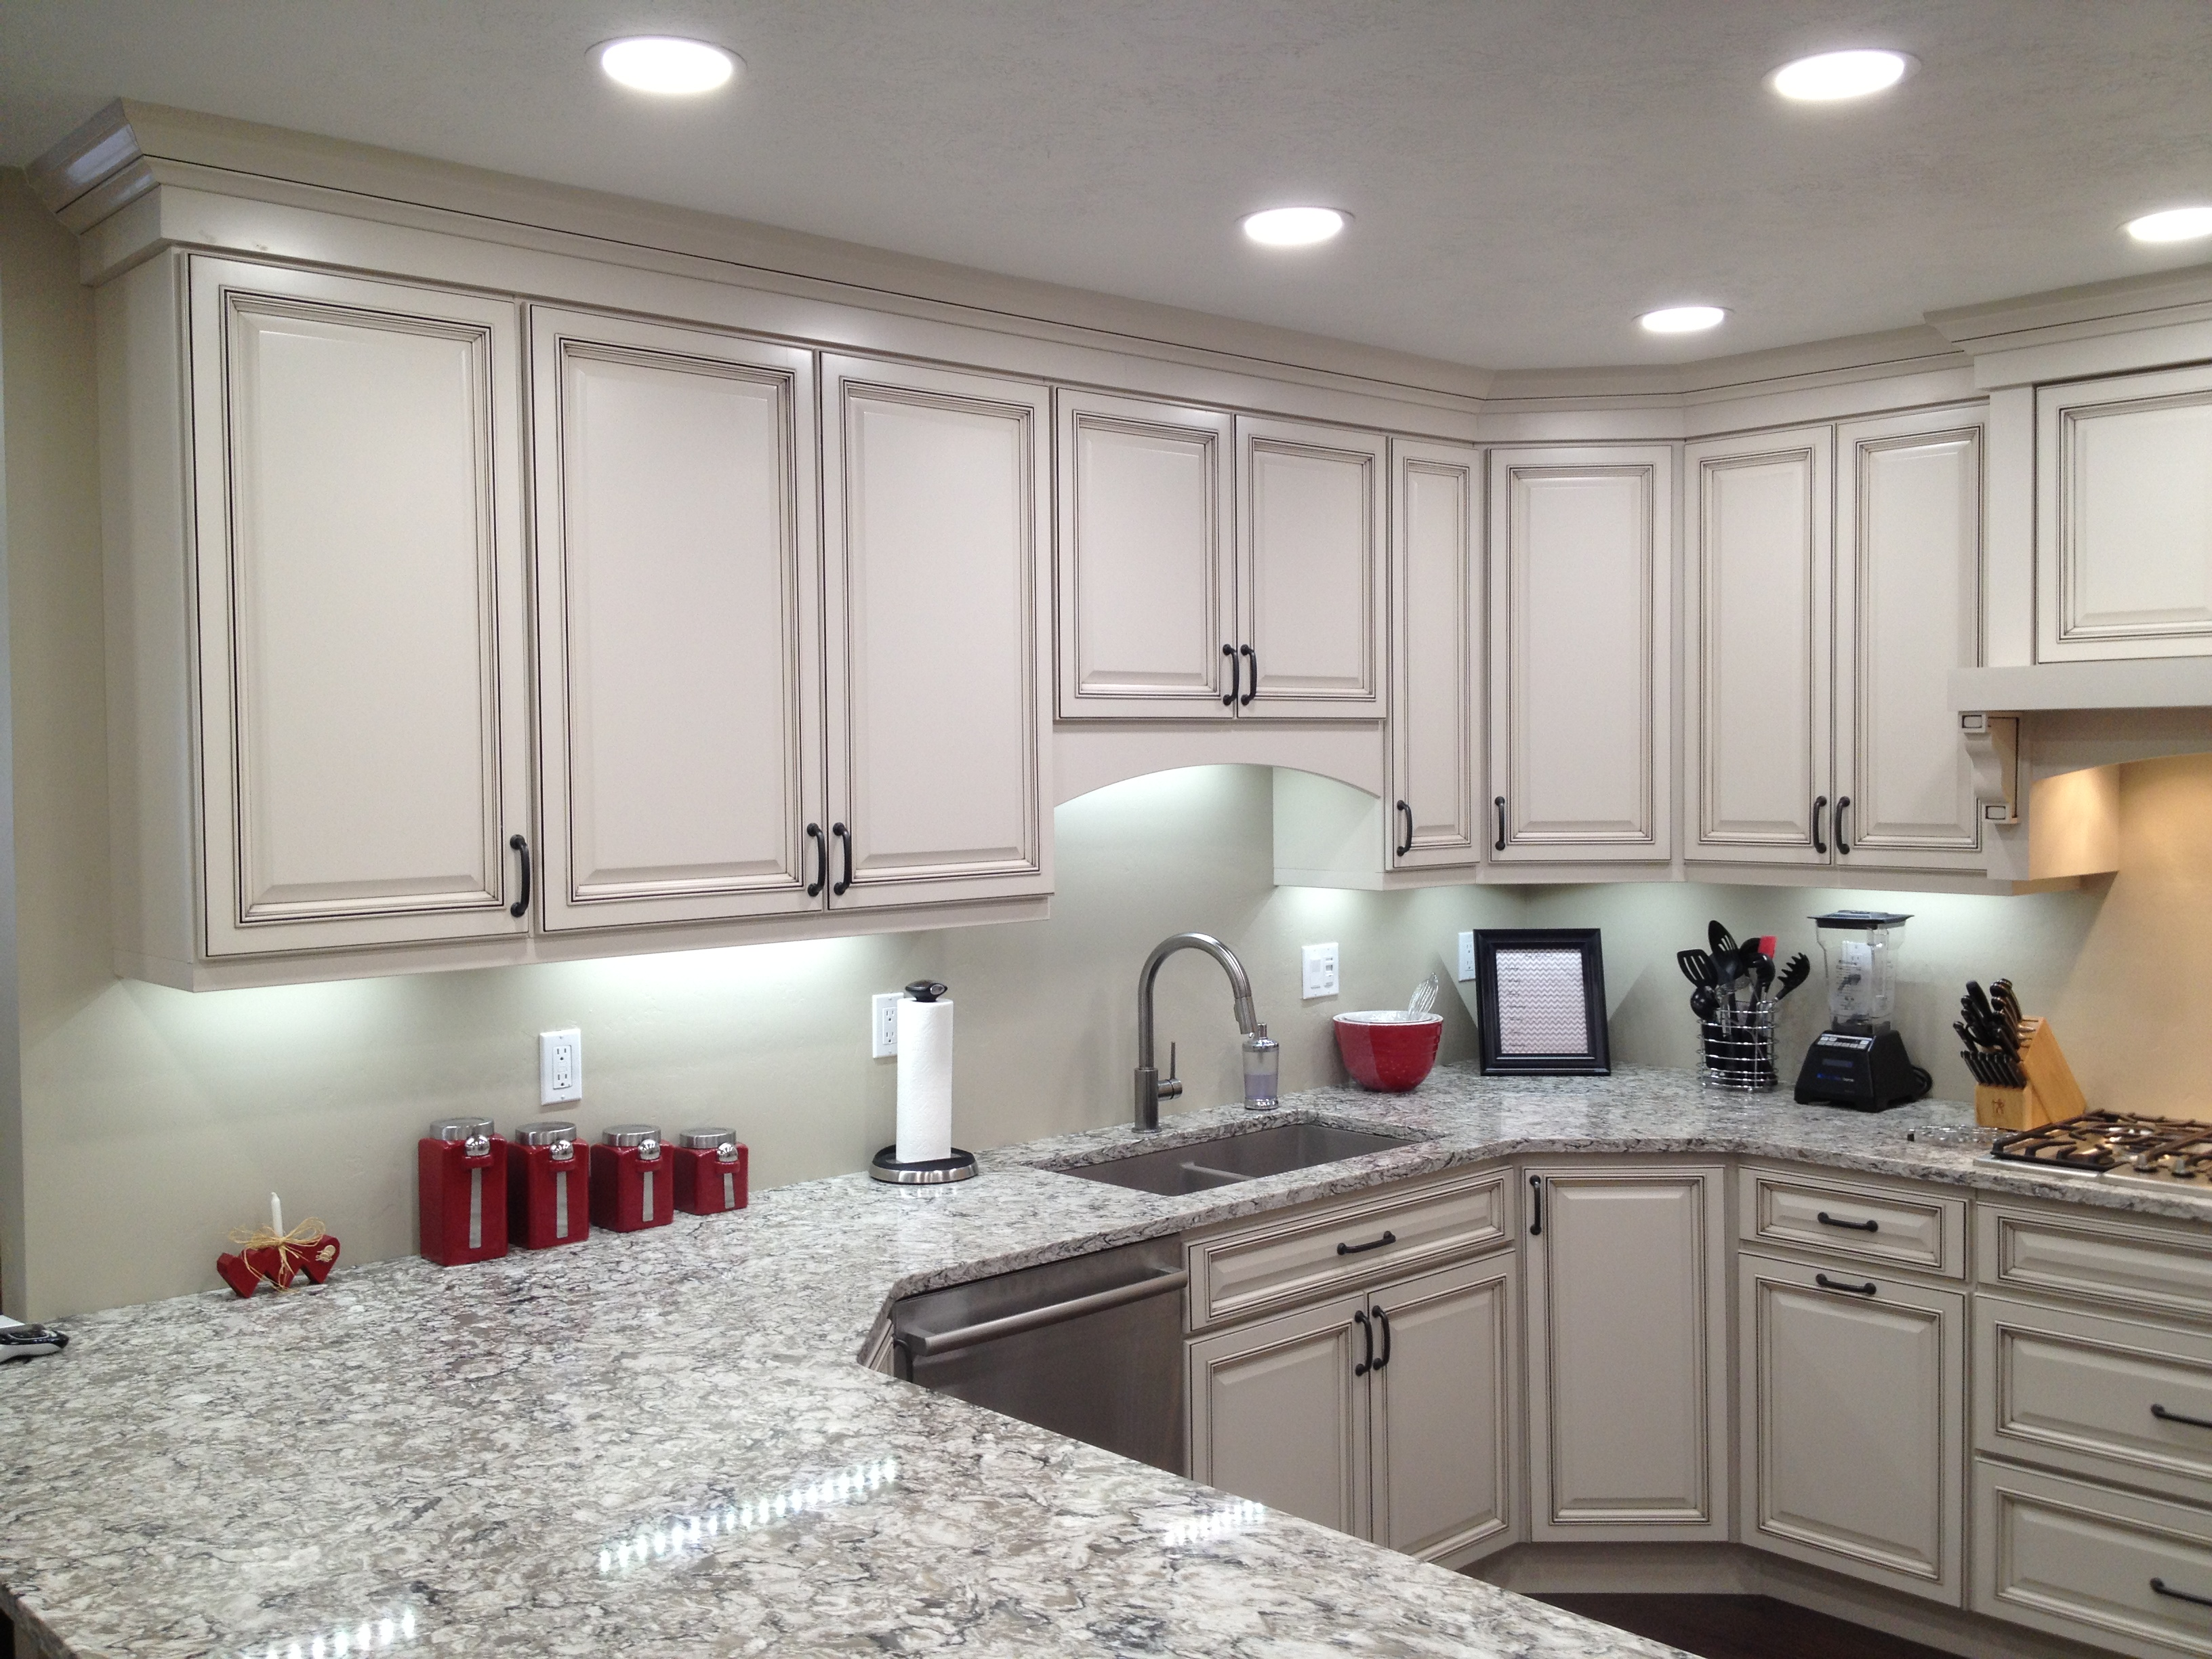 Wireless Lighting For Under Kitchen Cabinets